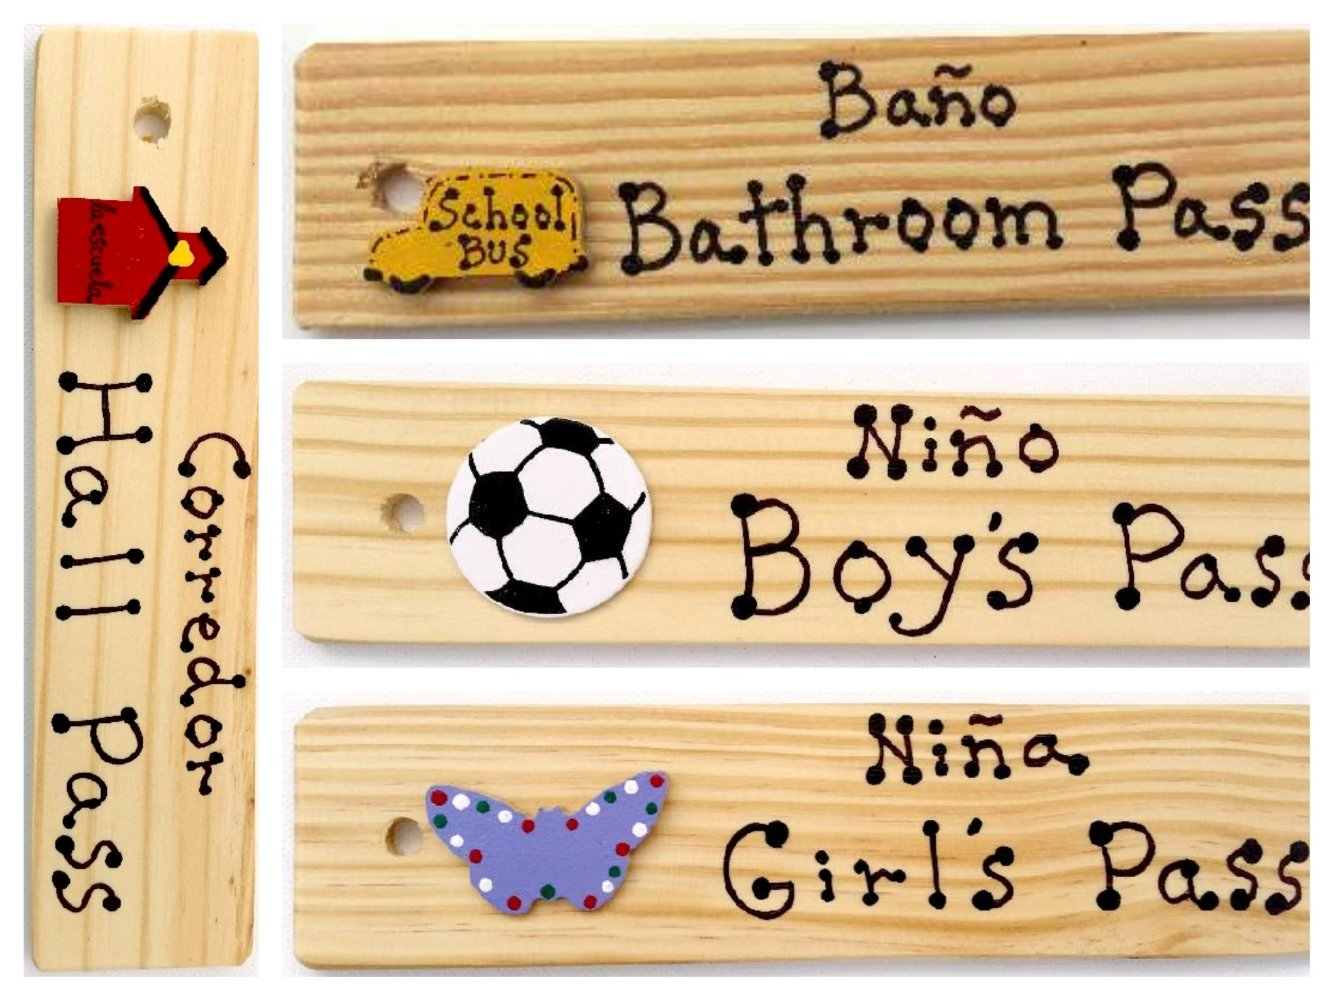 Bilingual Passes - AA-911 ESSET4 Set of 4(Hall, Bathroom, Boy's & Girl's) Made in USA - 8''x2'' Wooden Pass w/Hang Loop.